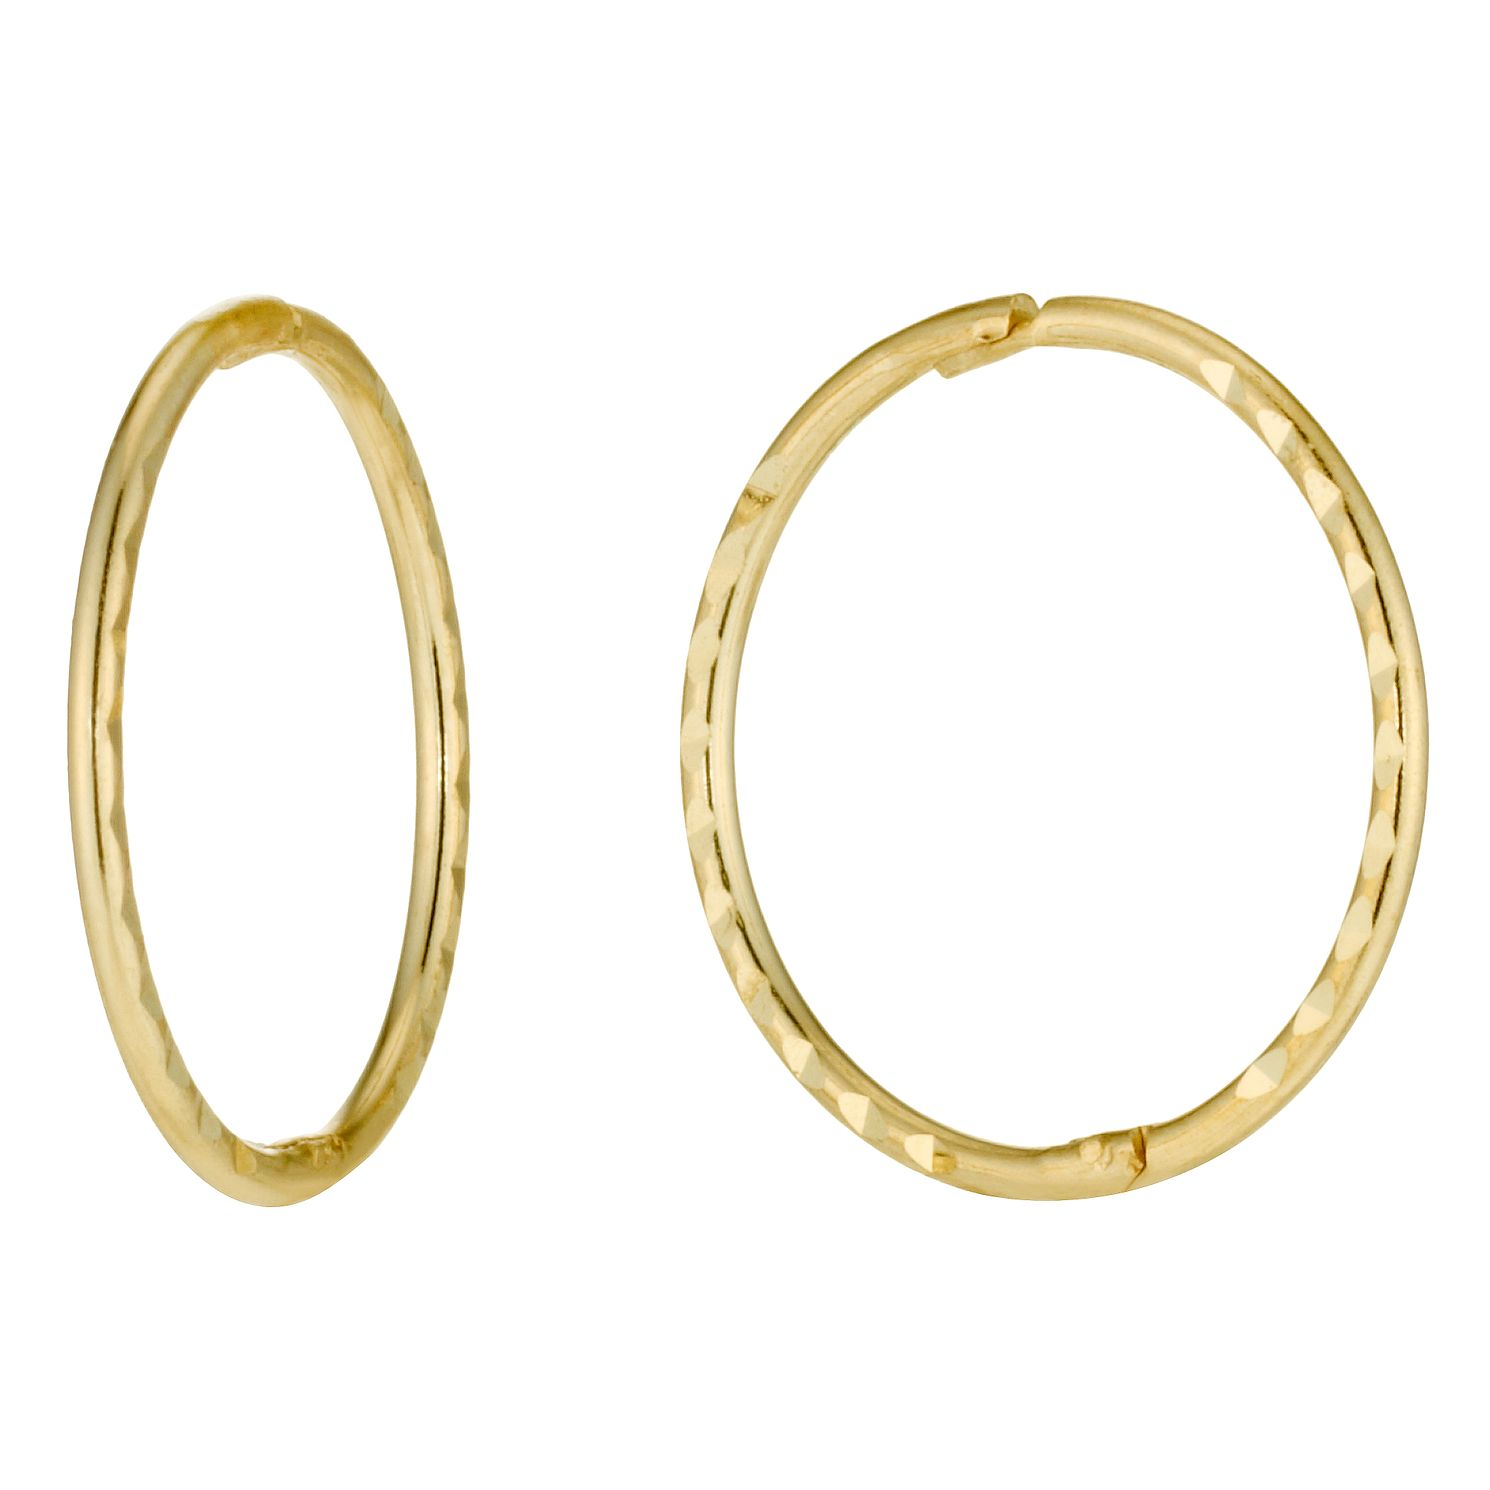 yellow roberto jewelers oval jewellery beckers gold hoop coin earrings perfect